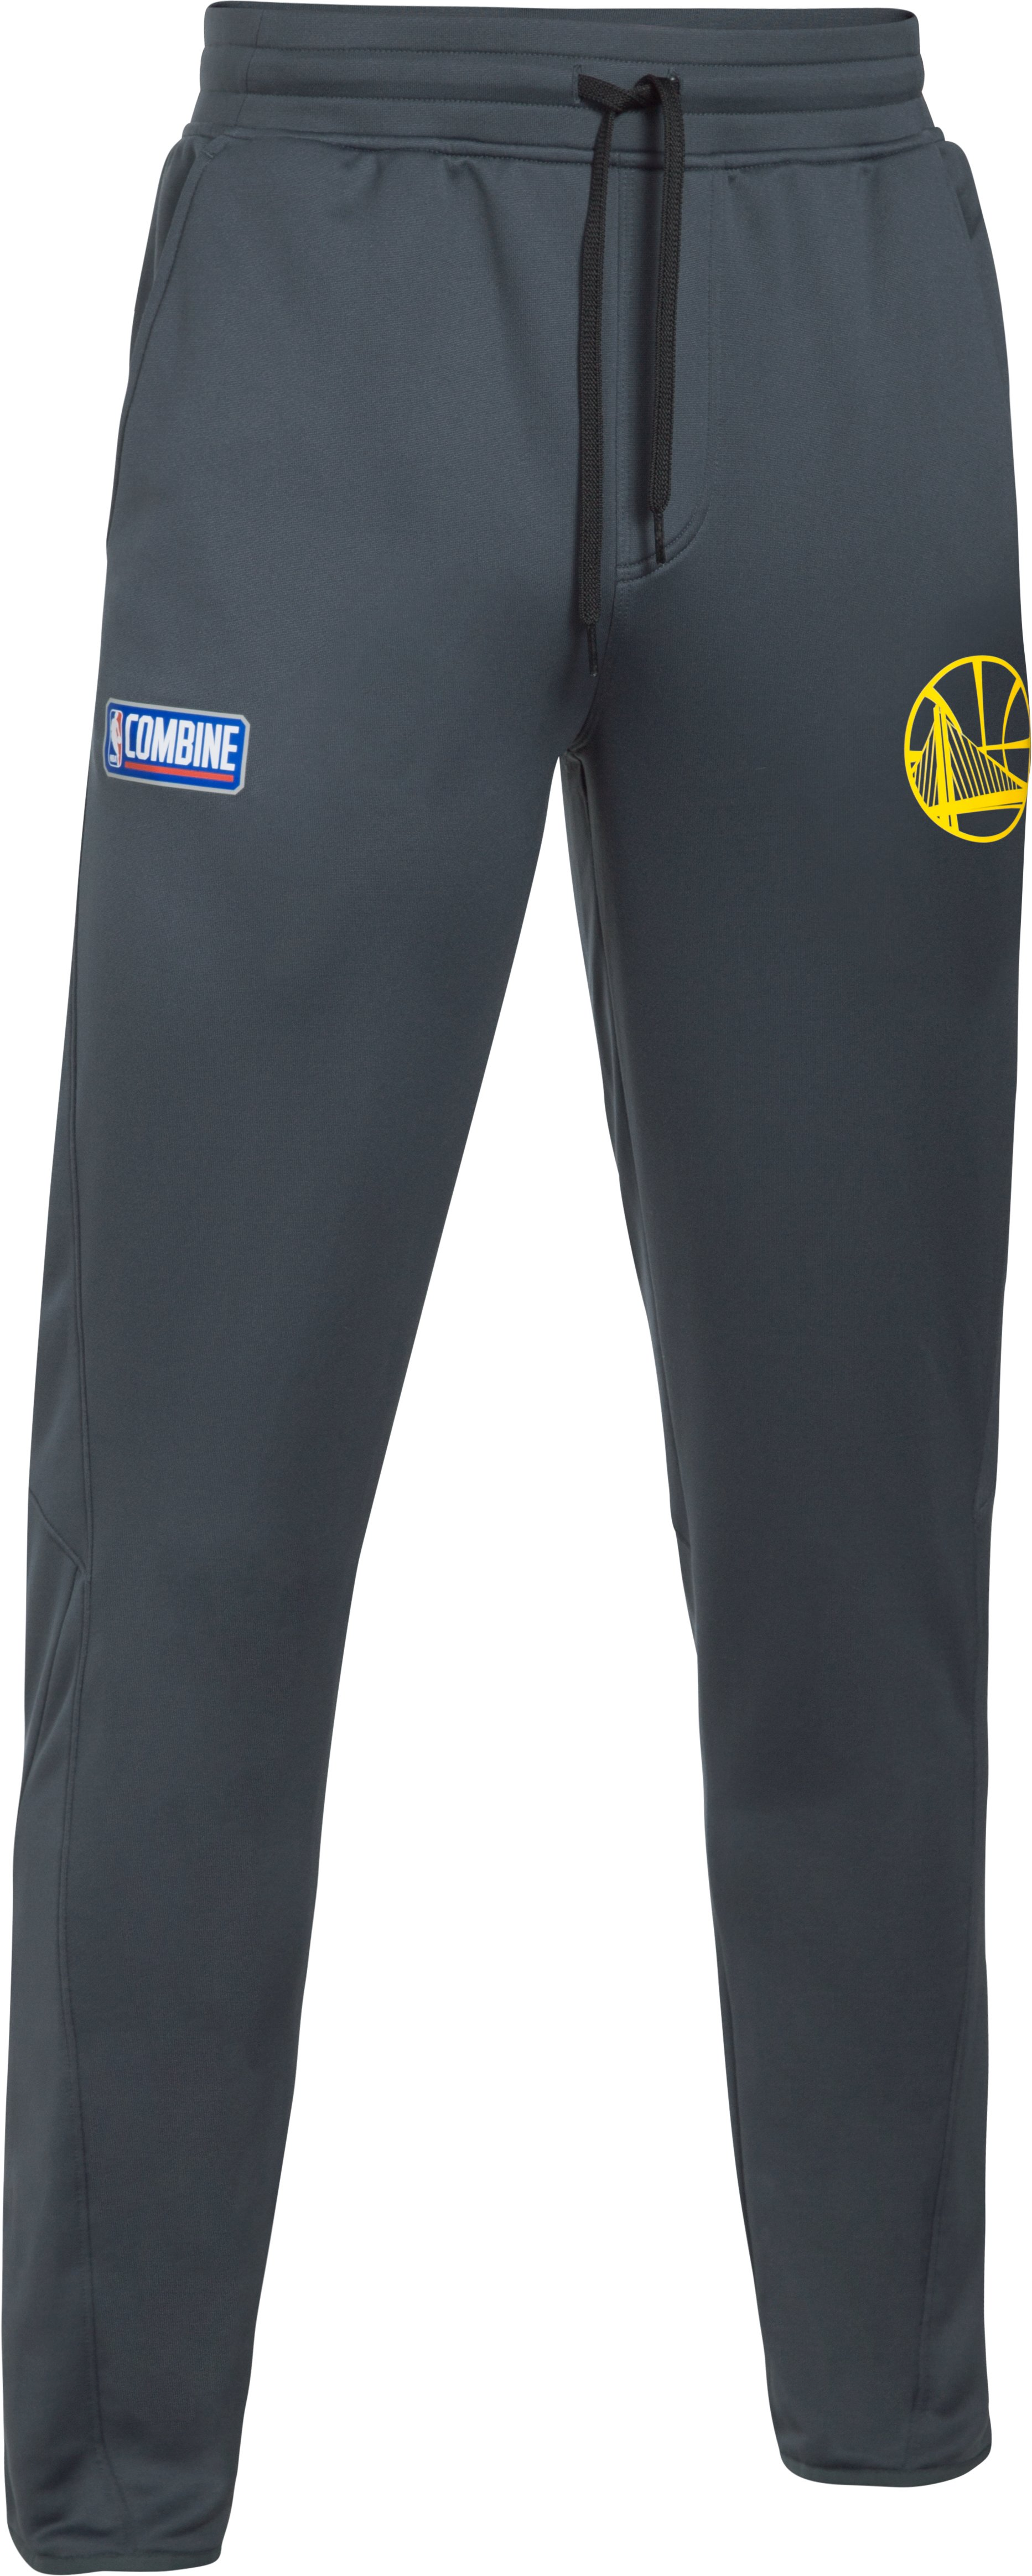 Men's NBA Combine UA Baseline Tapered Pants, NBA_GOLDEN STATE WARRIORS_STEALTH GRAY,